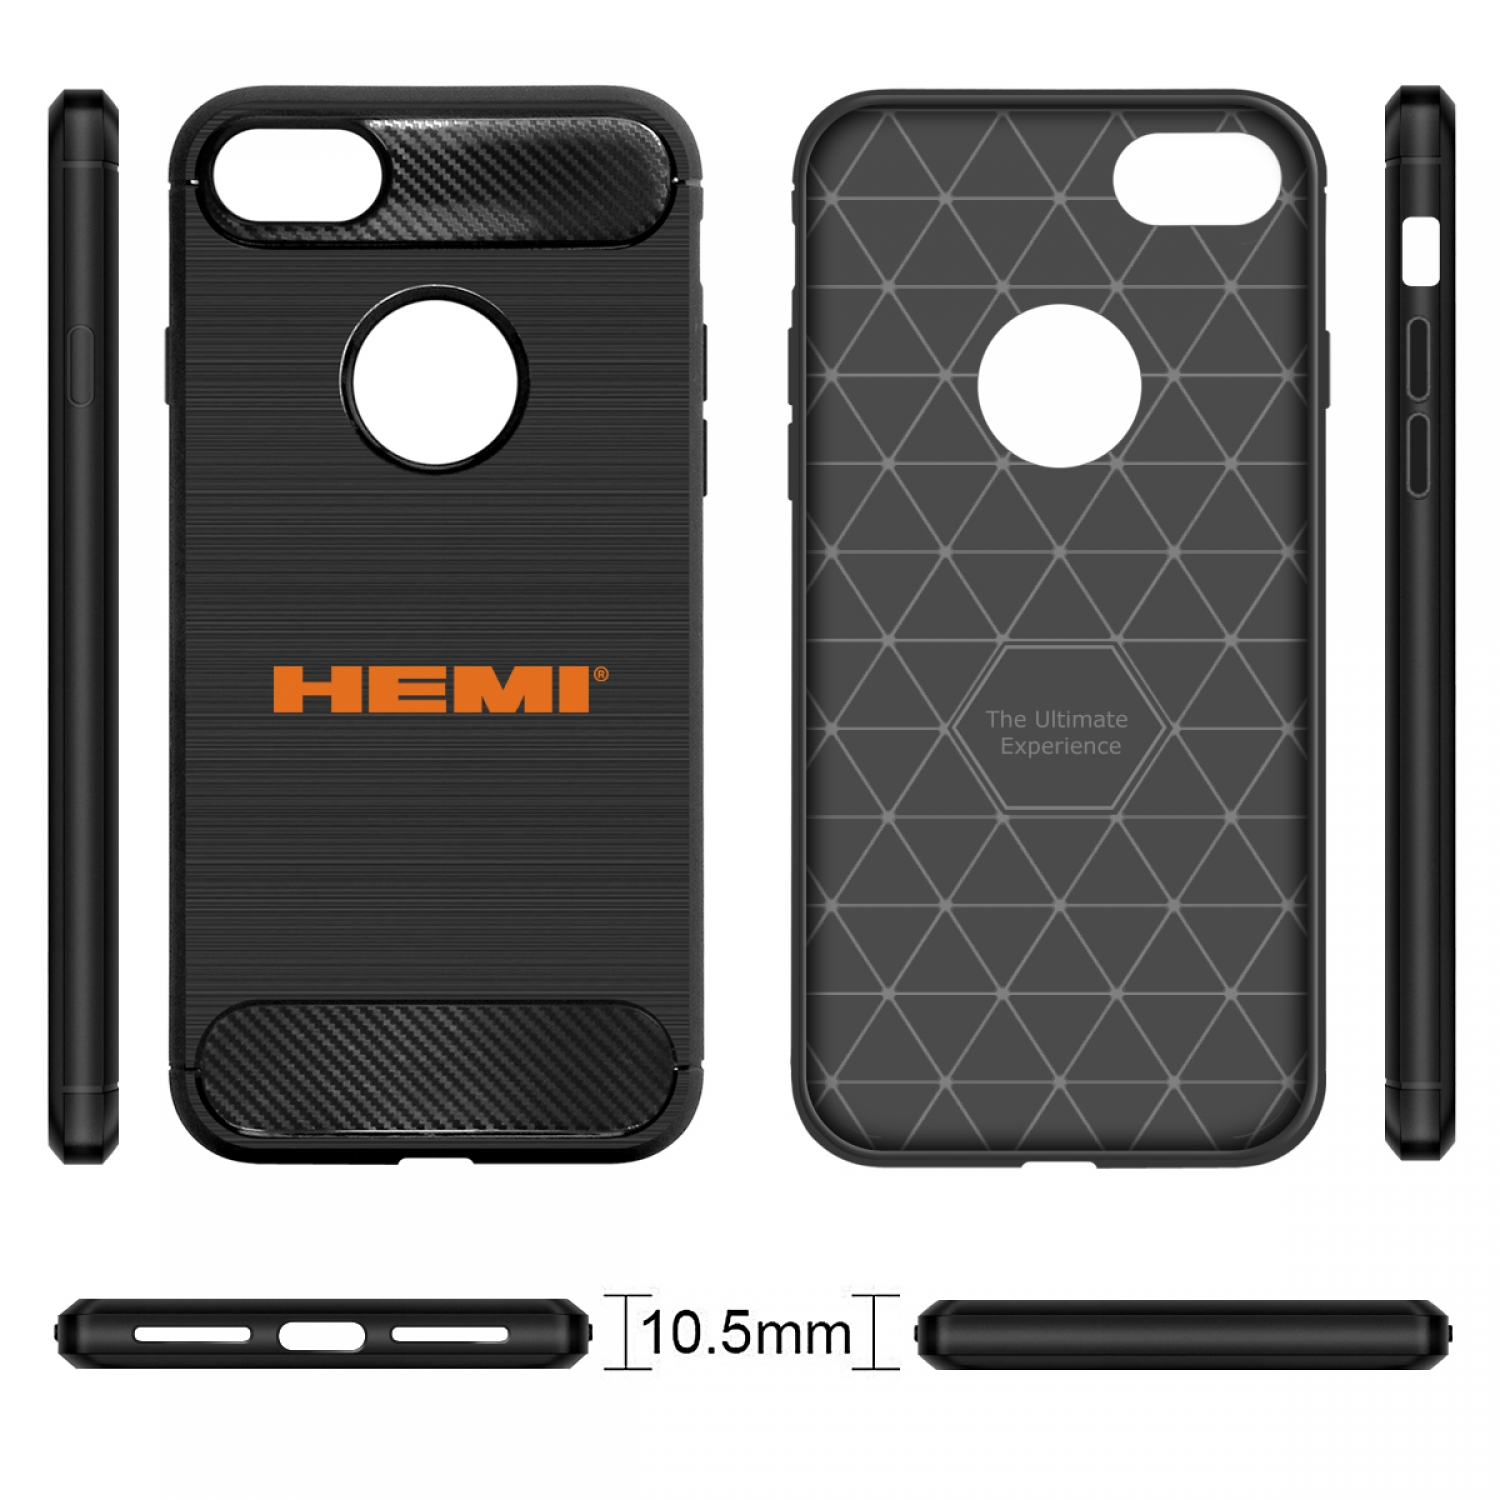 iPhone 7 Case, HEMI Logo Black TPU Shockproof Carbon Fiber Textures Cell Phone Case